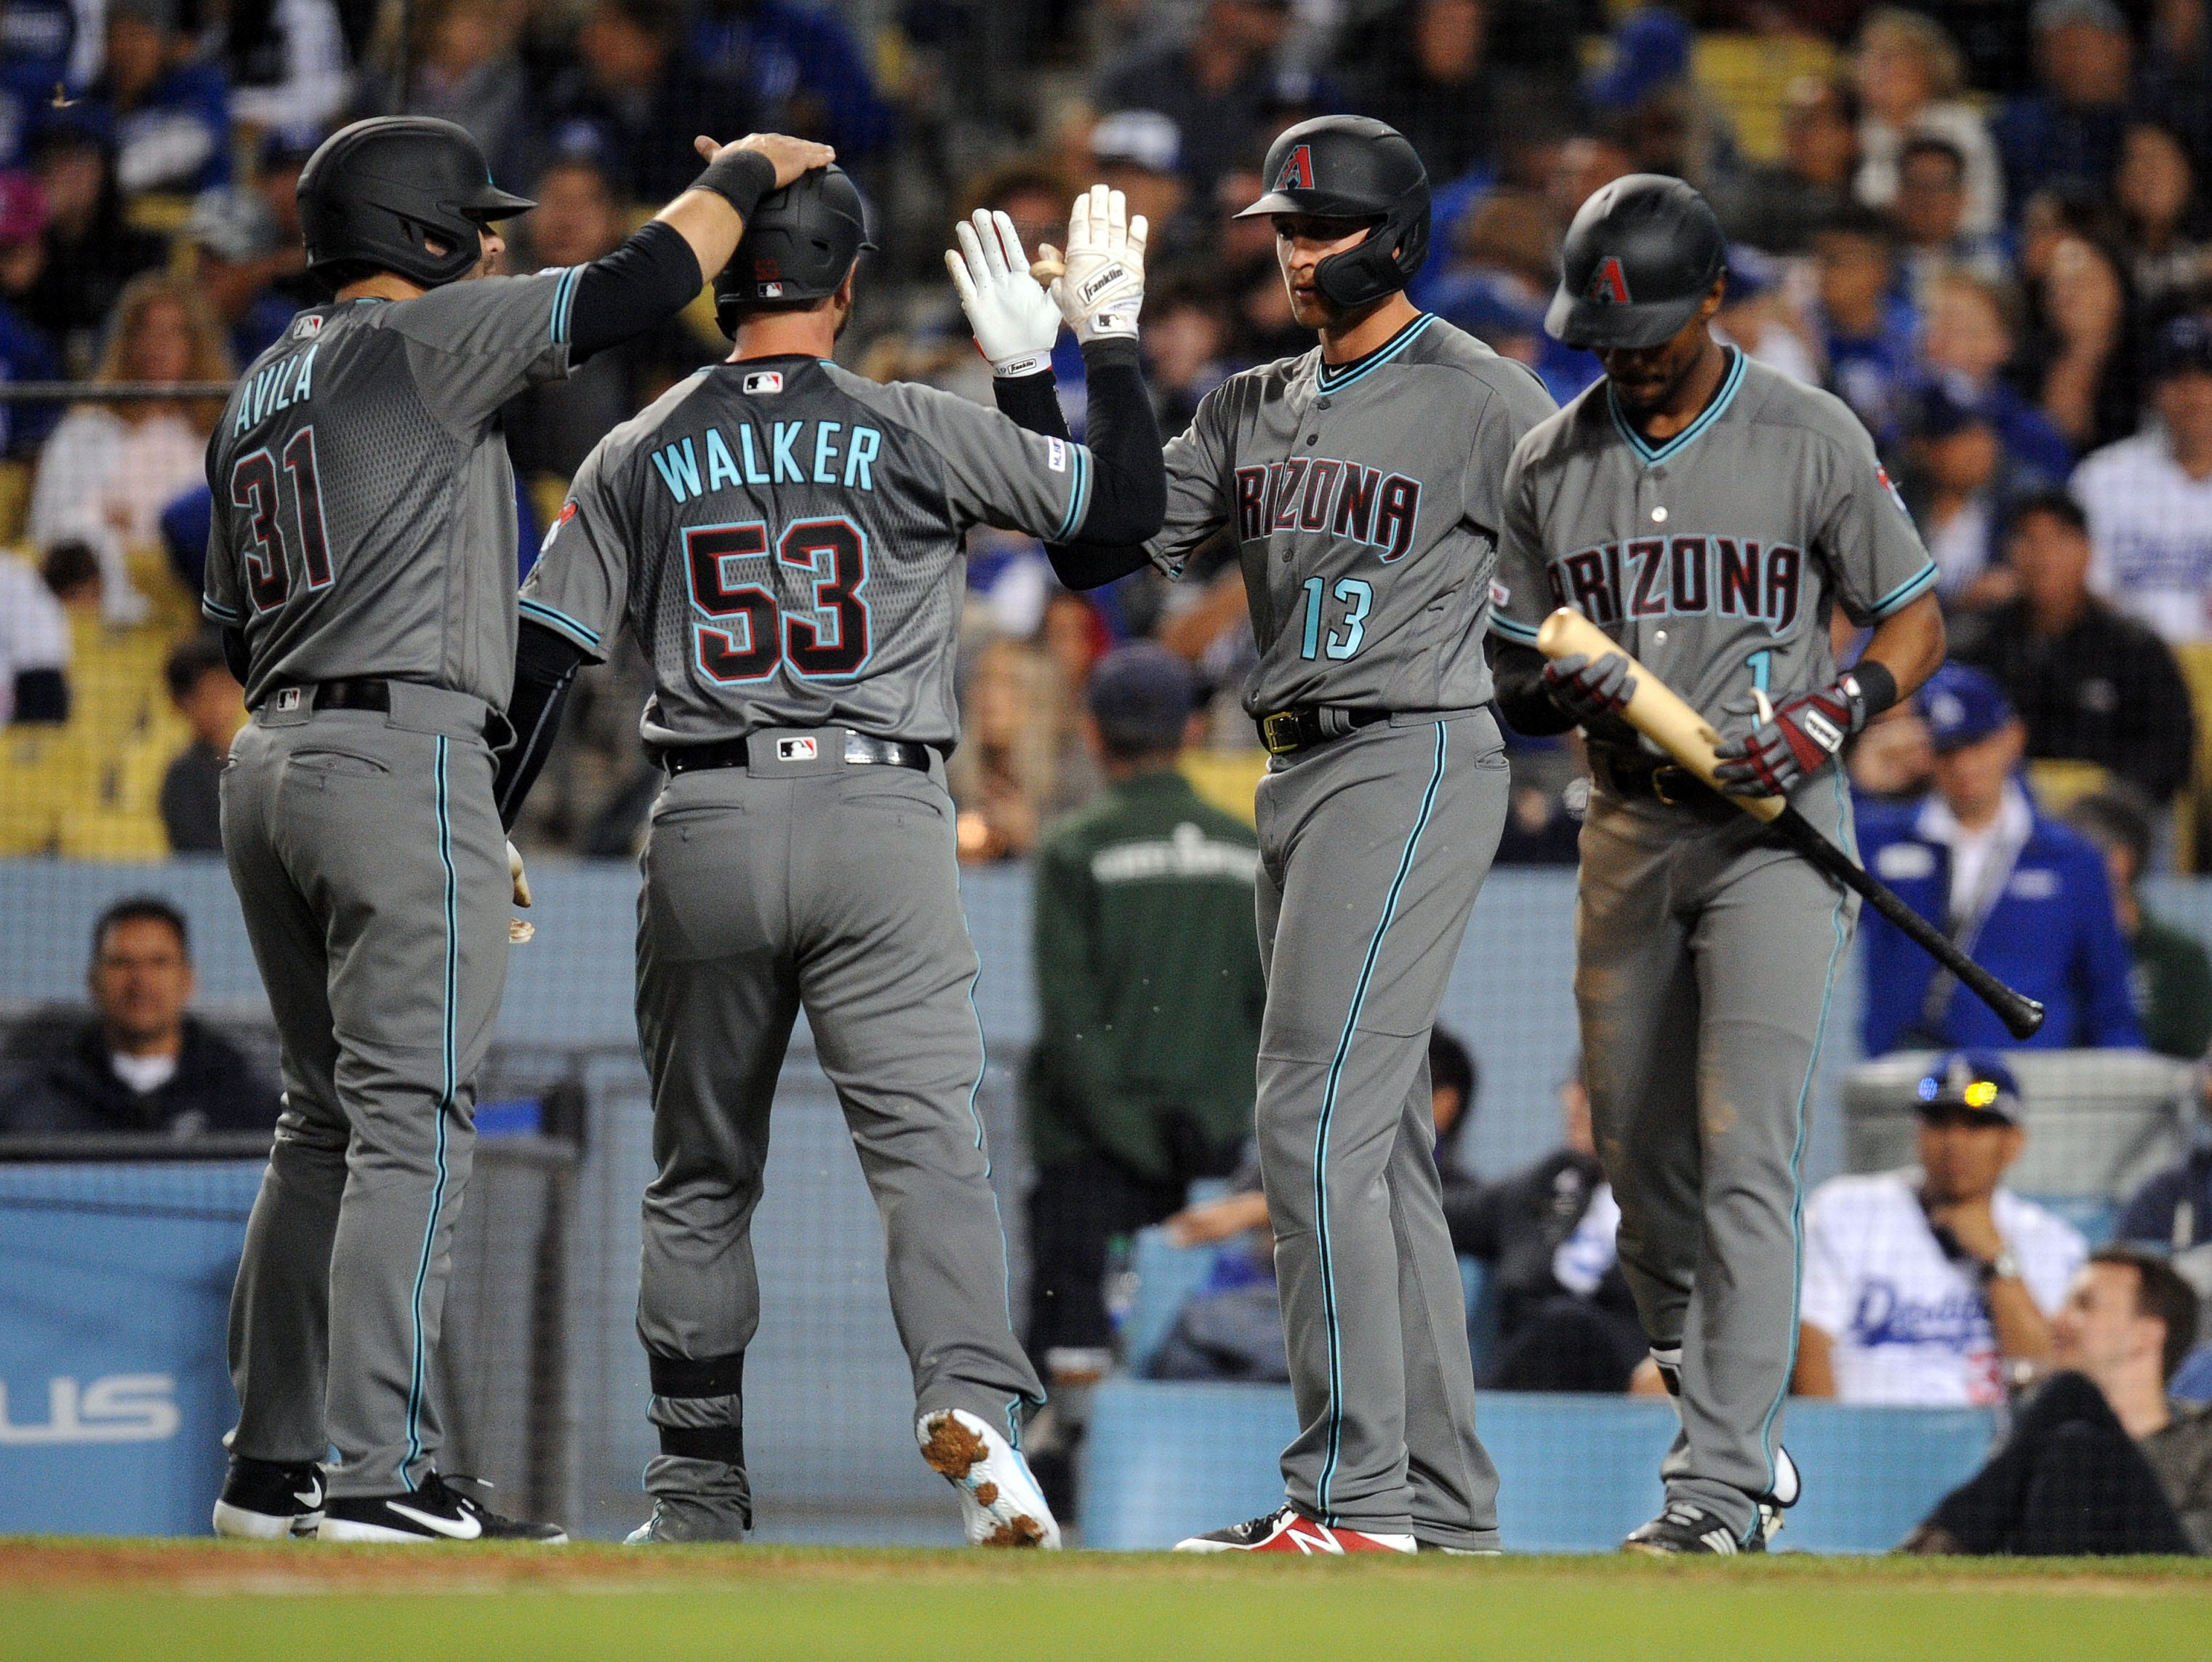 March 29, 2019; Los Angeles, CA, USA; Arizona Diamondbacks first baseman Christian Walker (53) is greeted by catcher Alex Avila (31) and shortstop Nick Ahmed (13) after hitting a three run home run against the Los Angeles Dodgers during the seventh inning at Dodger Stadium. Mandatory Credit: Gary A. Vasquez-USA TODAY Sports